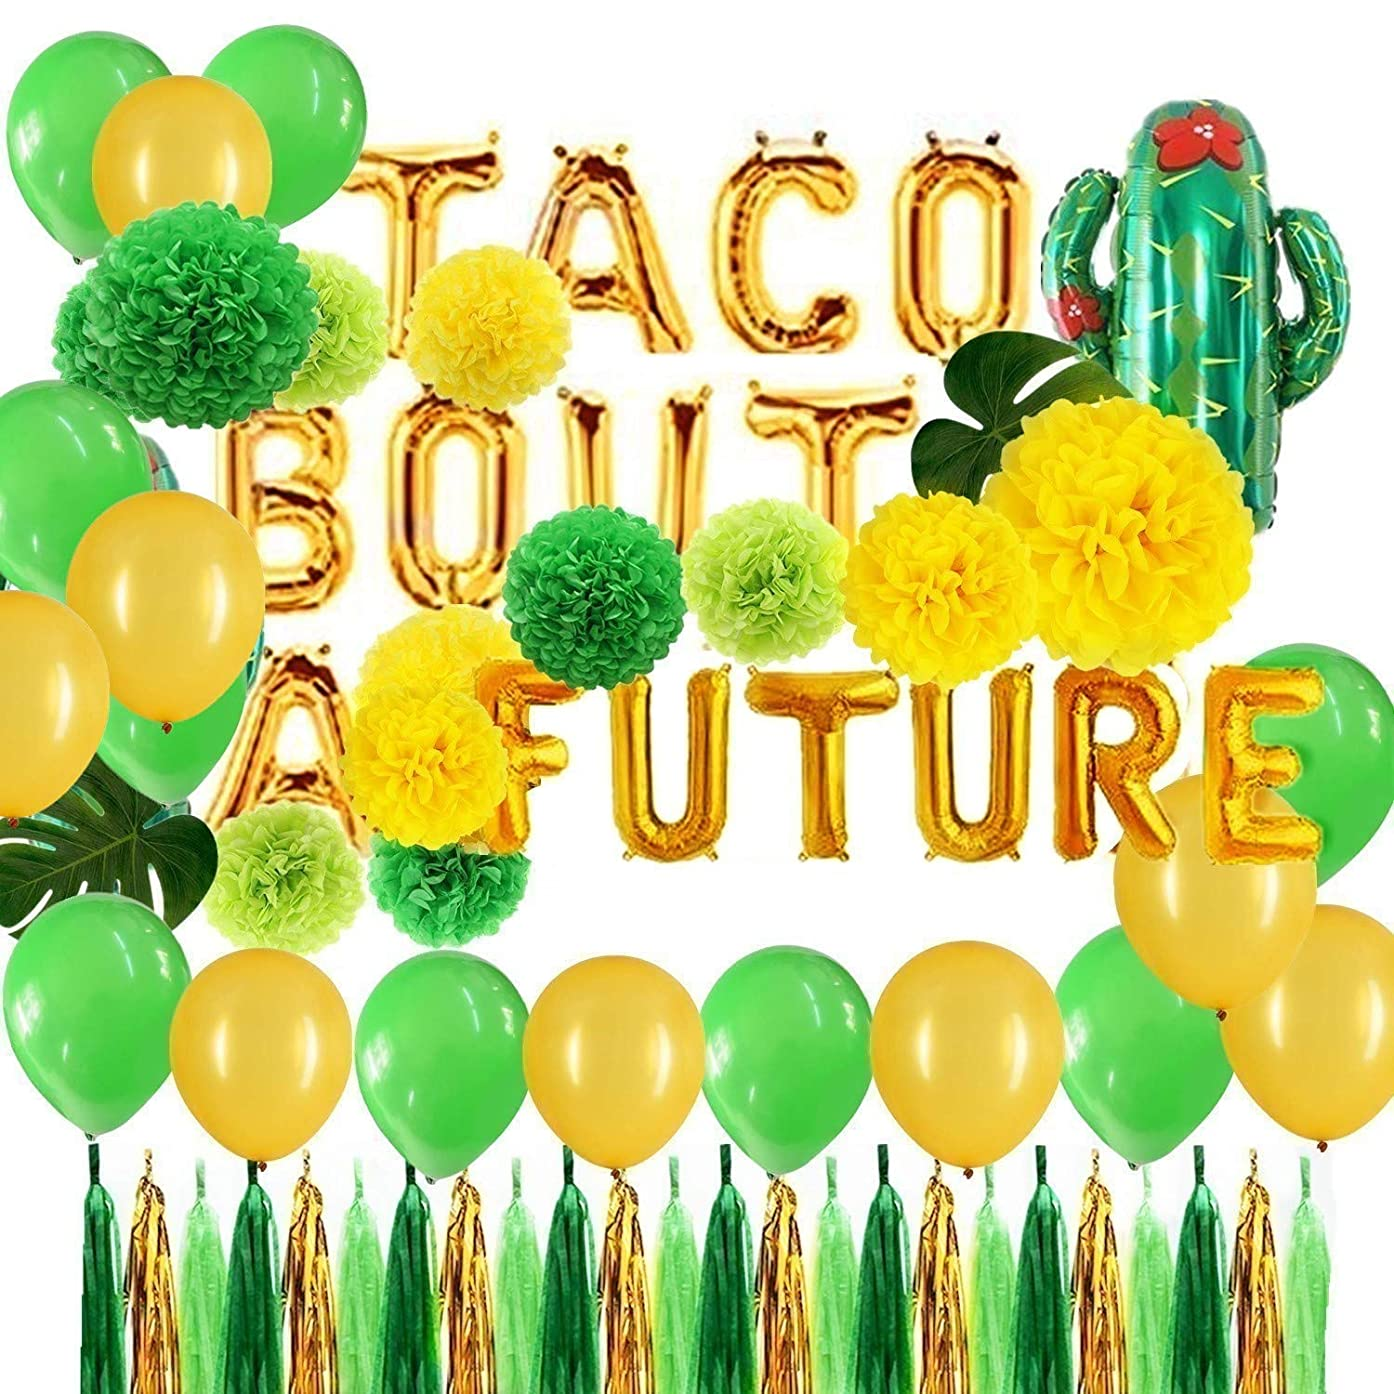 Green and Gold Taco Bout A Future Foil Cactus Balloons Tissue Pom Poms Flowers Tassel Garlands Set Fiesta Party Theme Bridal Shower Wedding Announcement Ideas Mexican Fiesta Theme Supplies